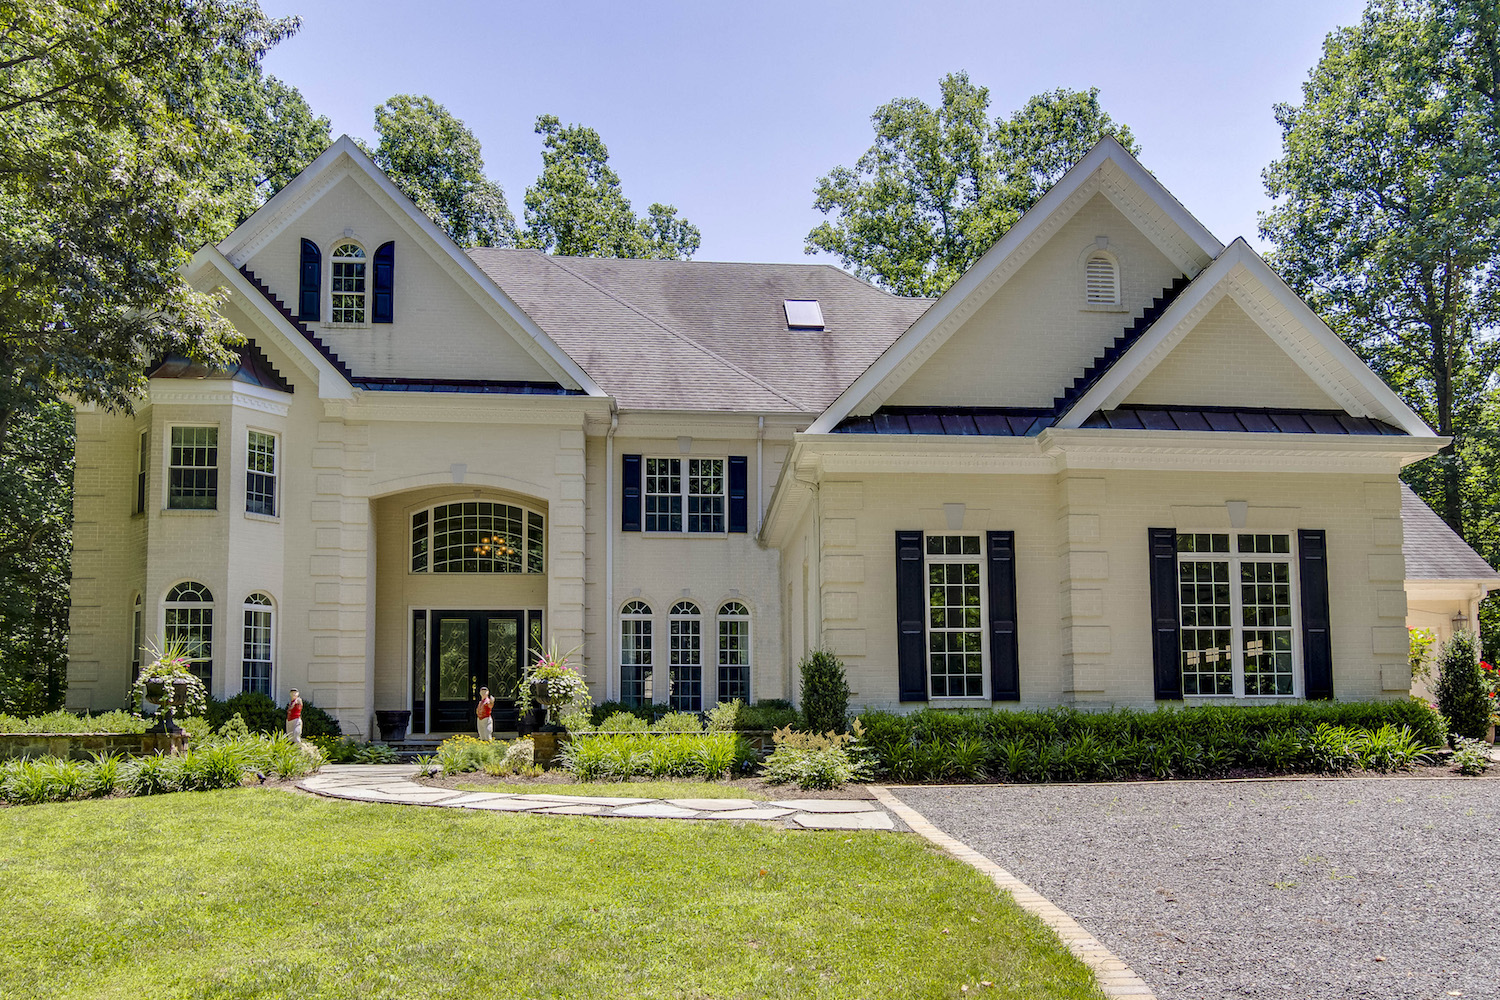 Home of the Week: Luxury estate with two-story foyer